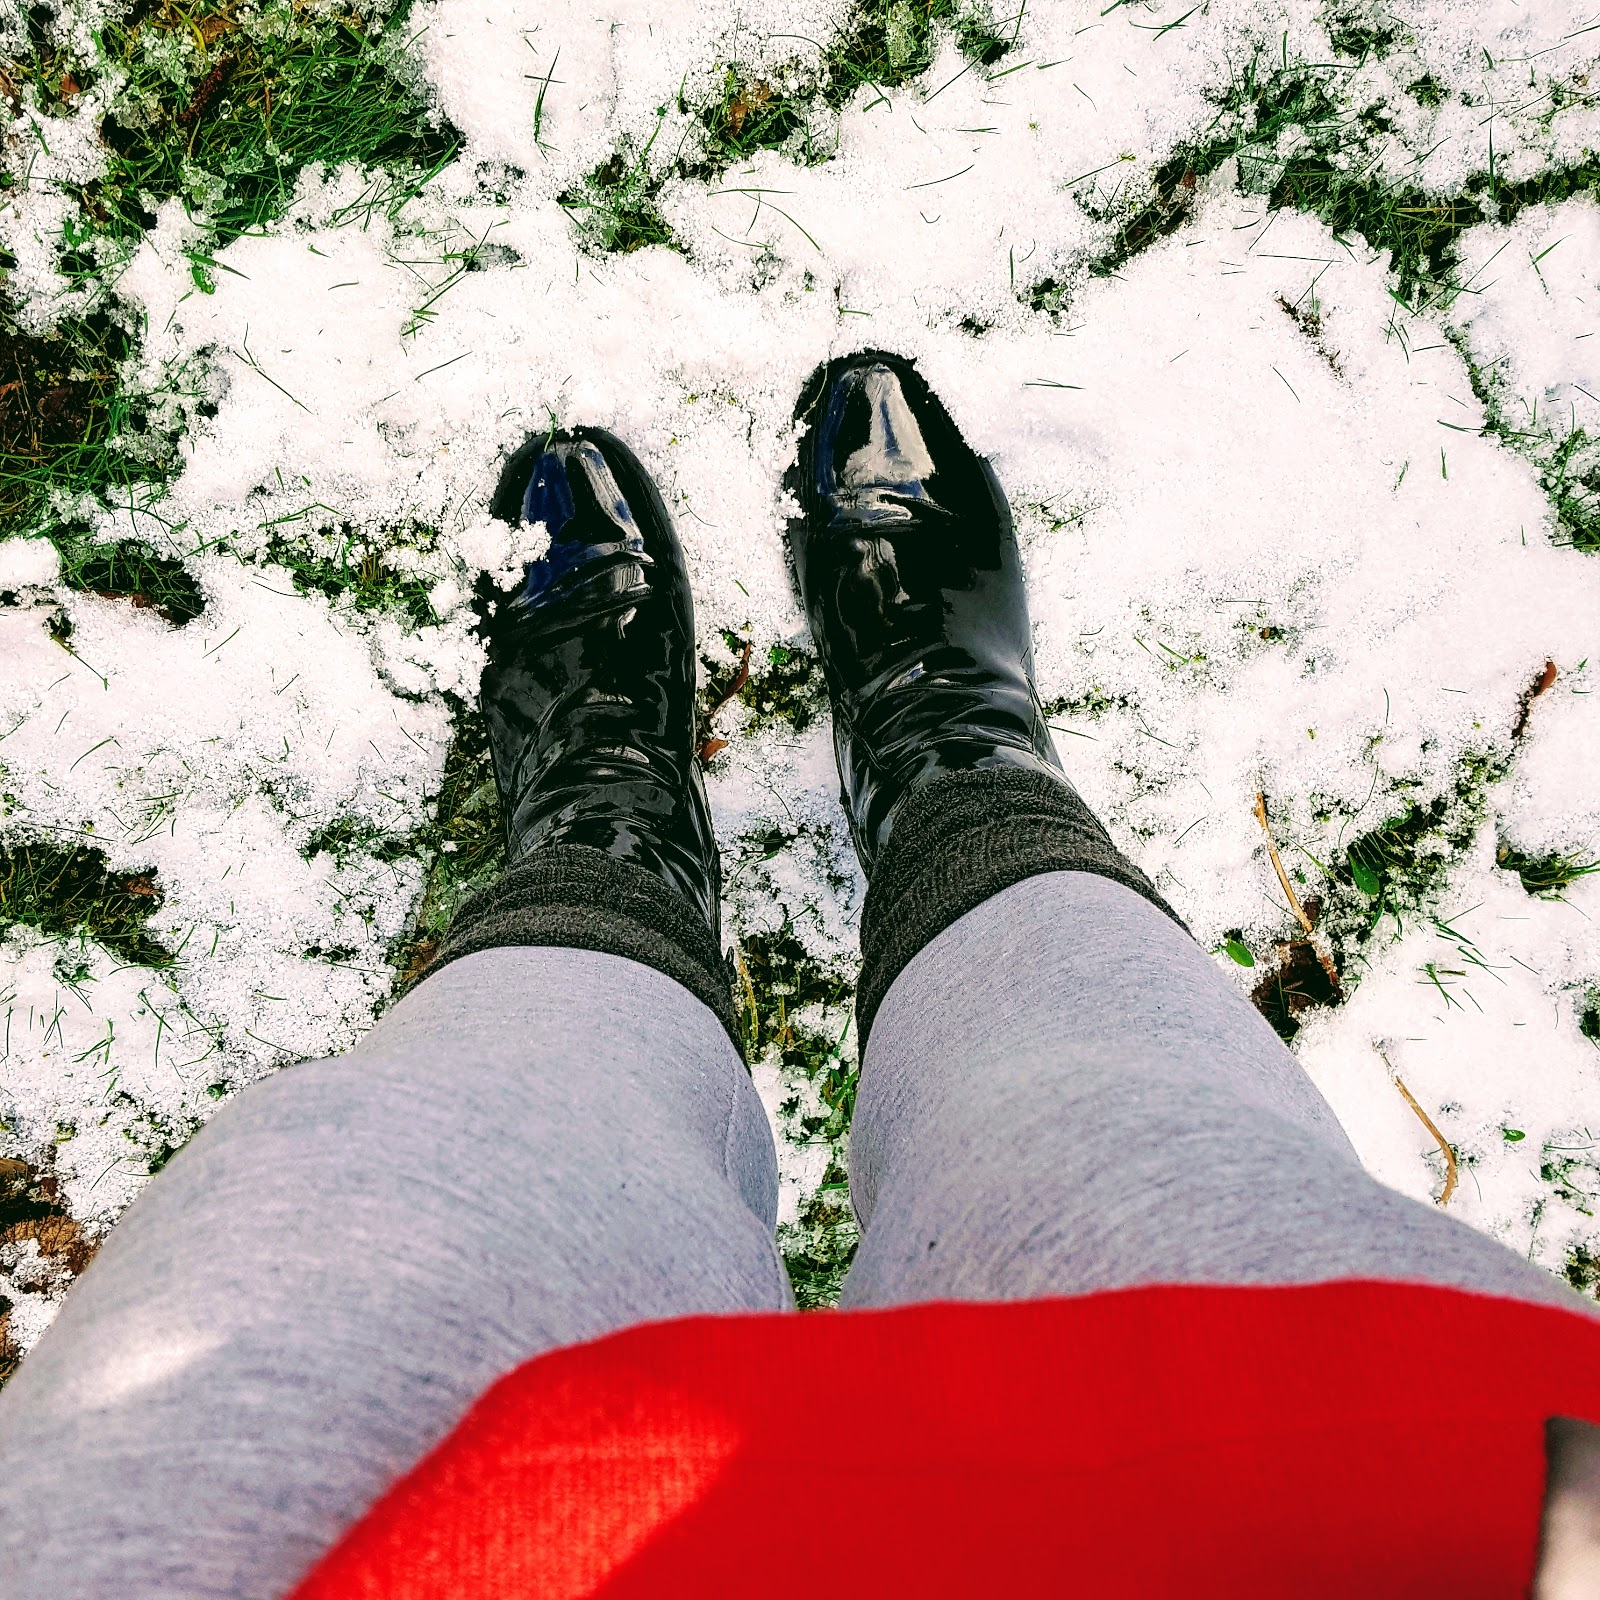 5 Ways To Keep Warm And Stylish In The Snow: Over 40 Style